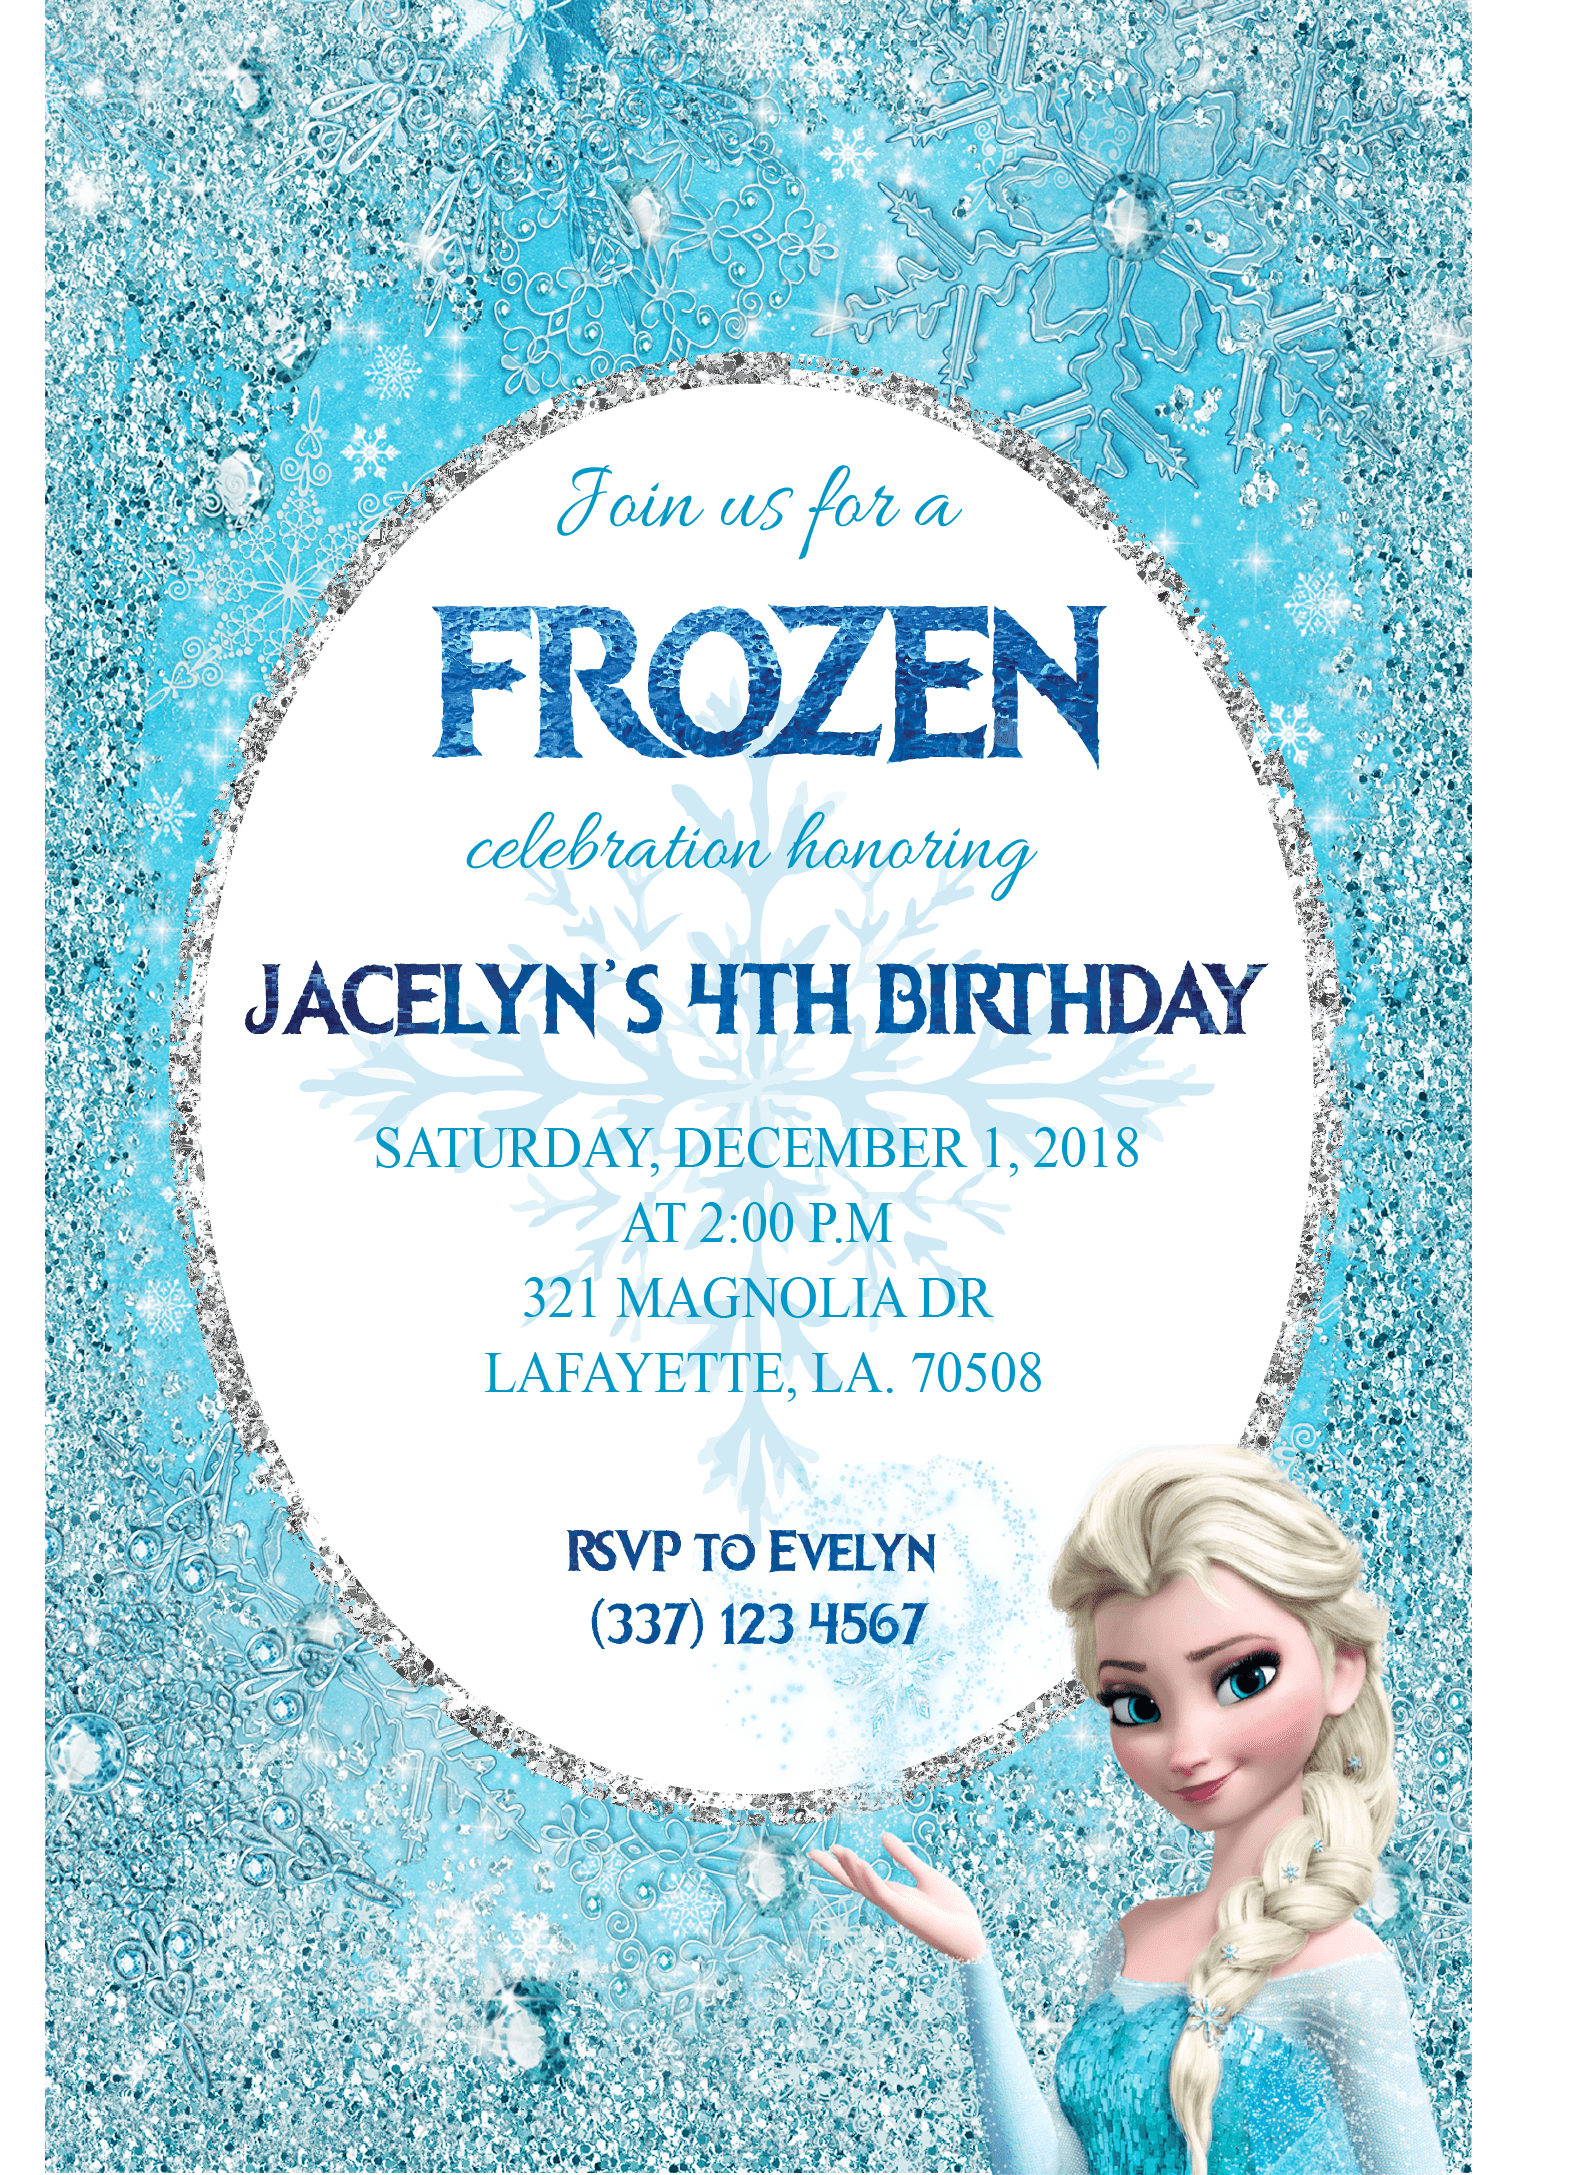 Frozen Birthday Invitation Printable Createve Stationery Designs